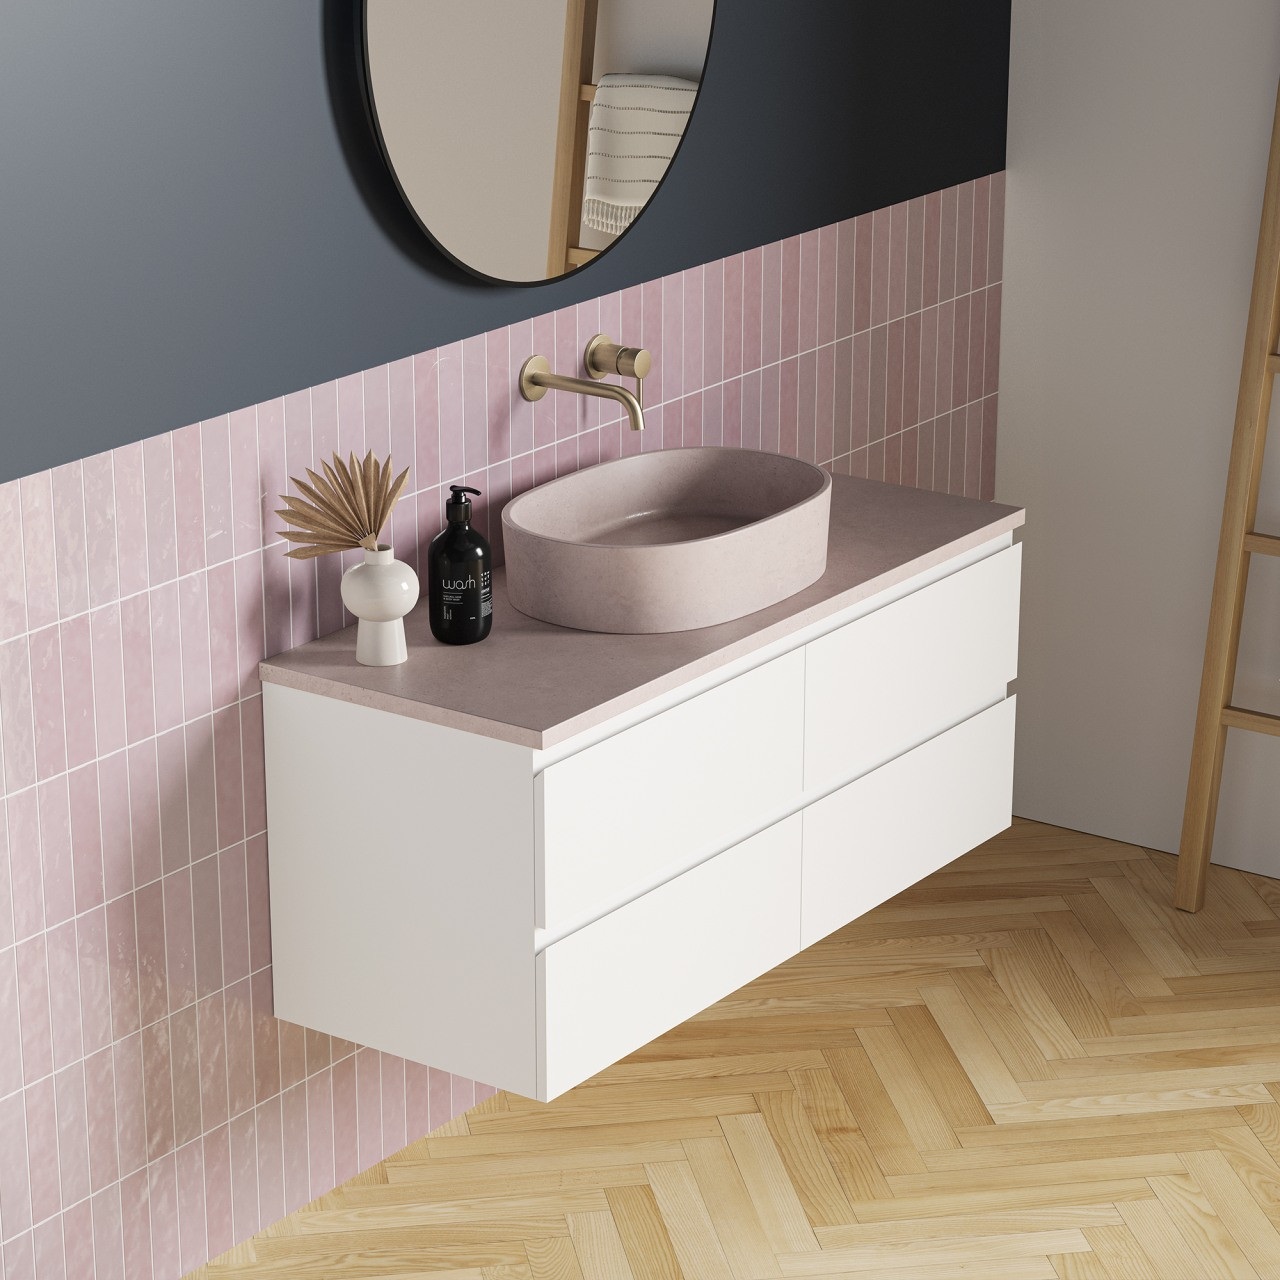 The BARE bathroom furniture pieces have strong, designer